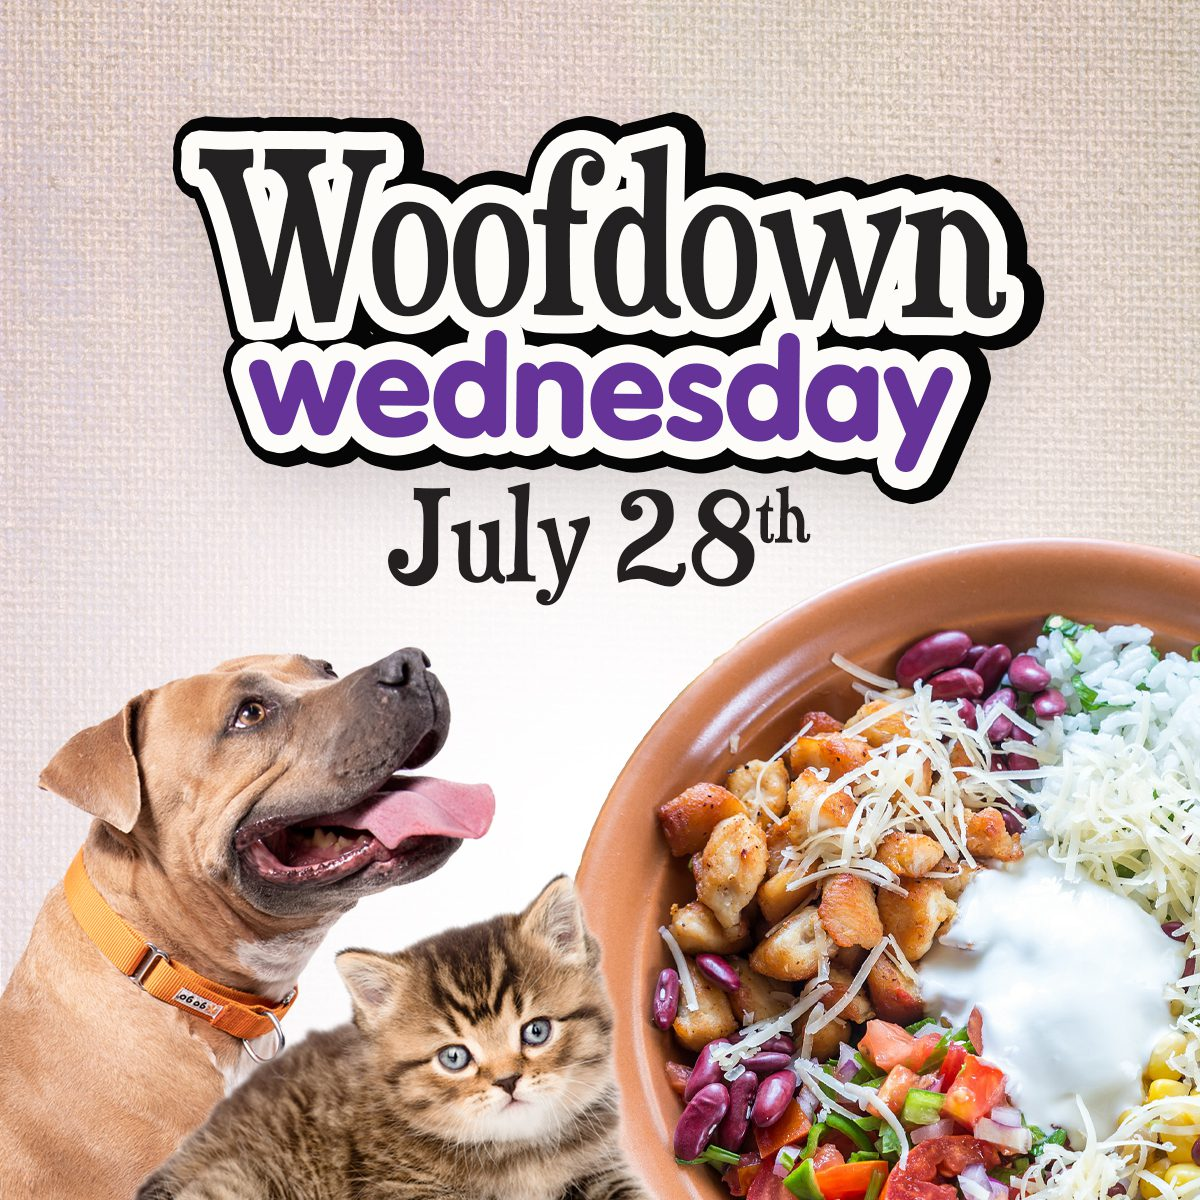 Woofdown Wednesday 2021 Square graphic